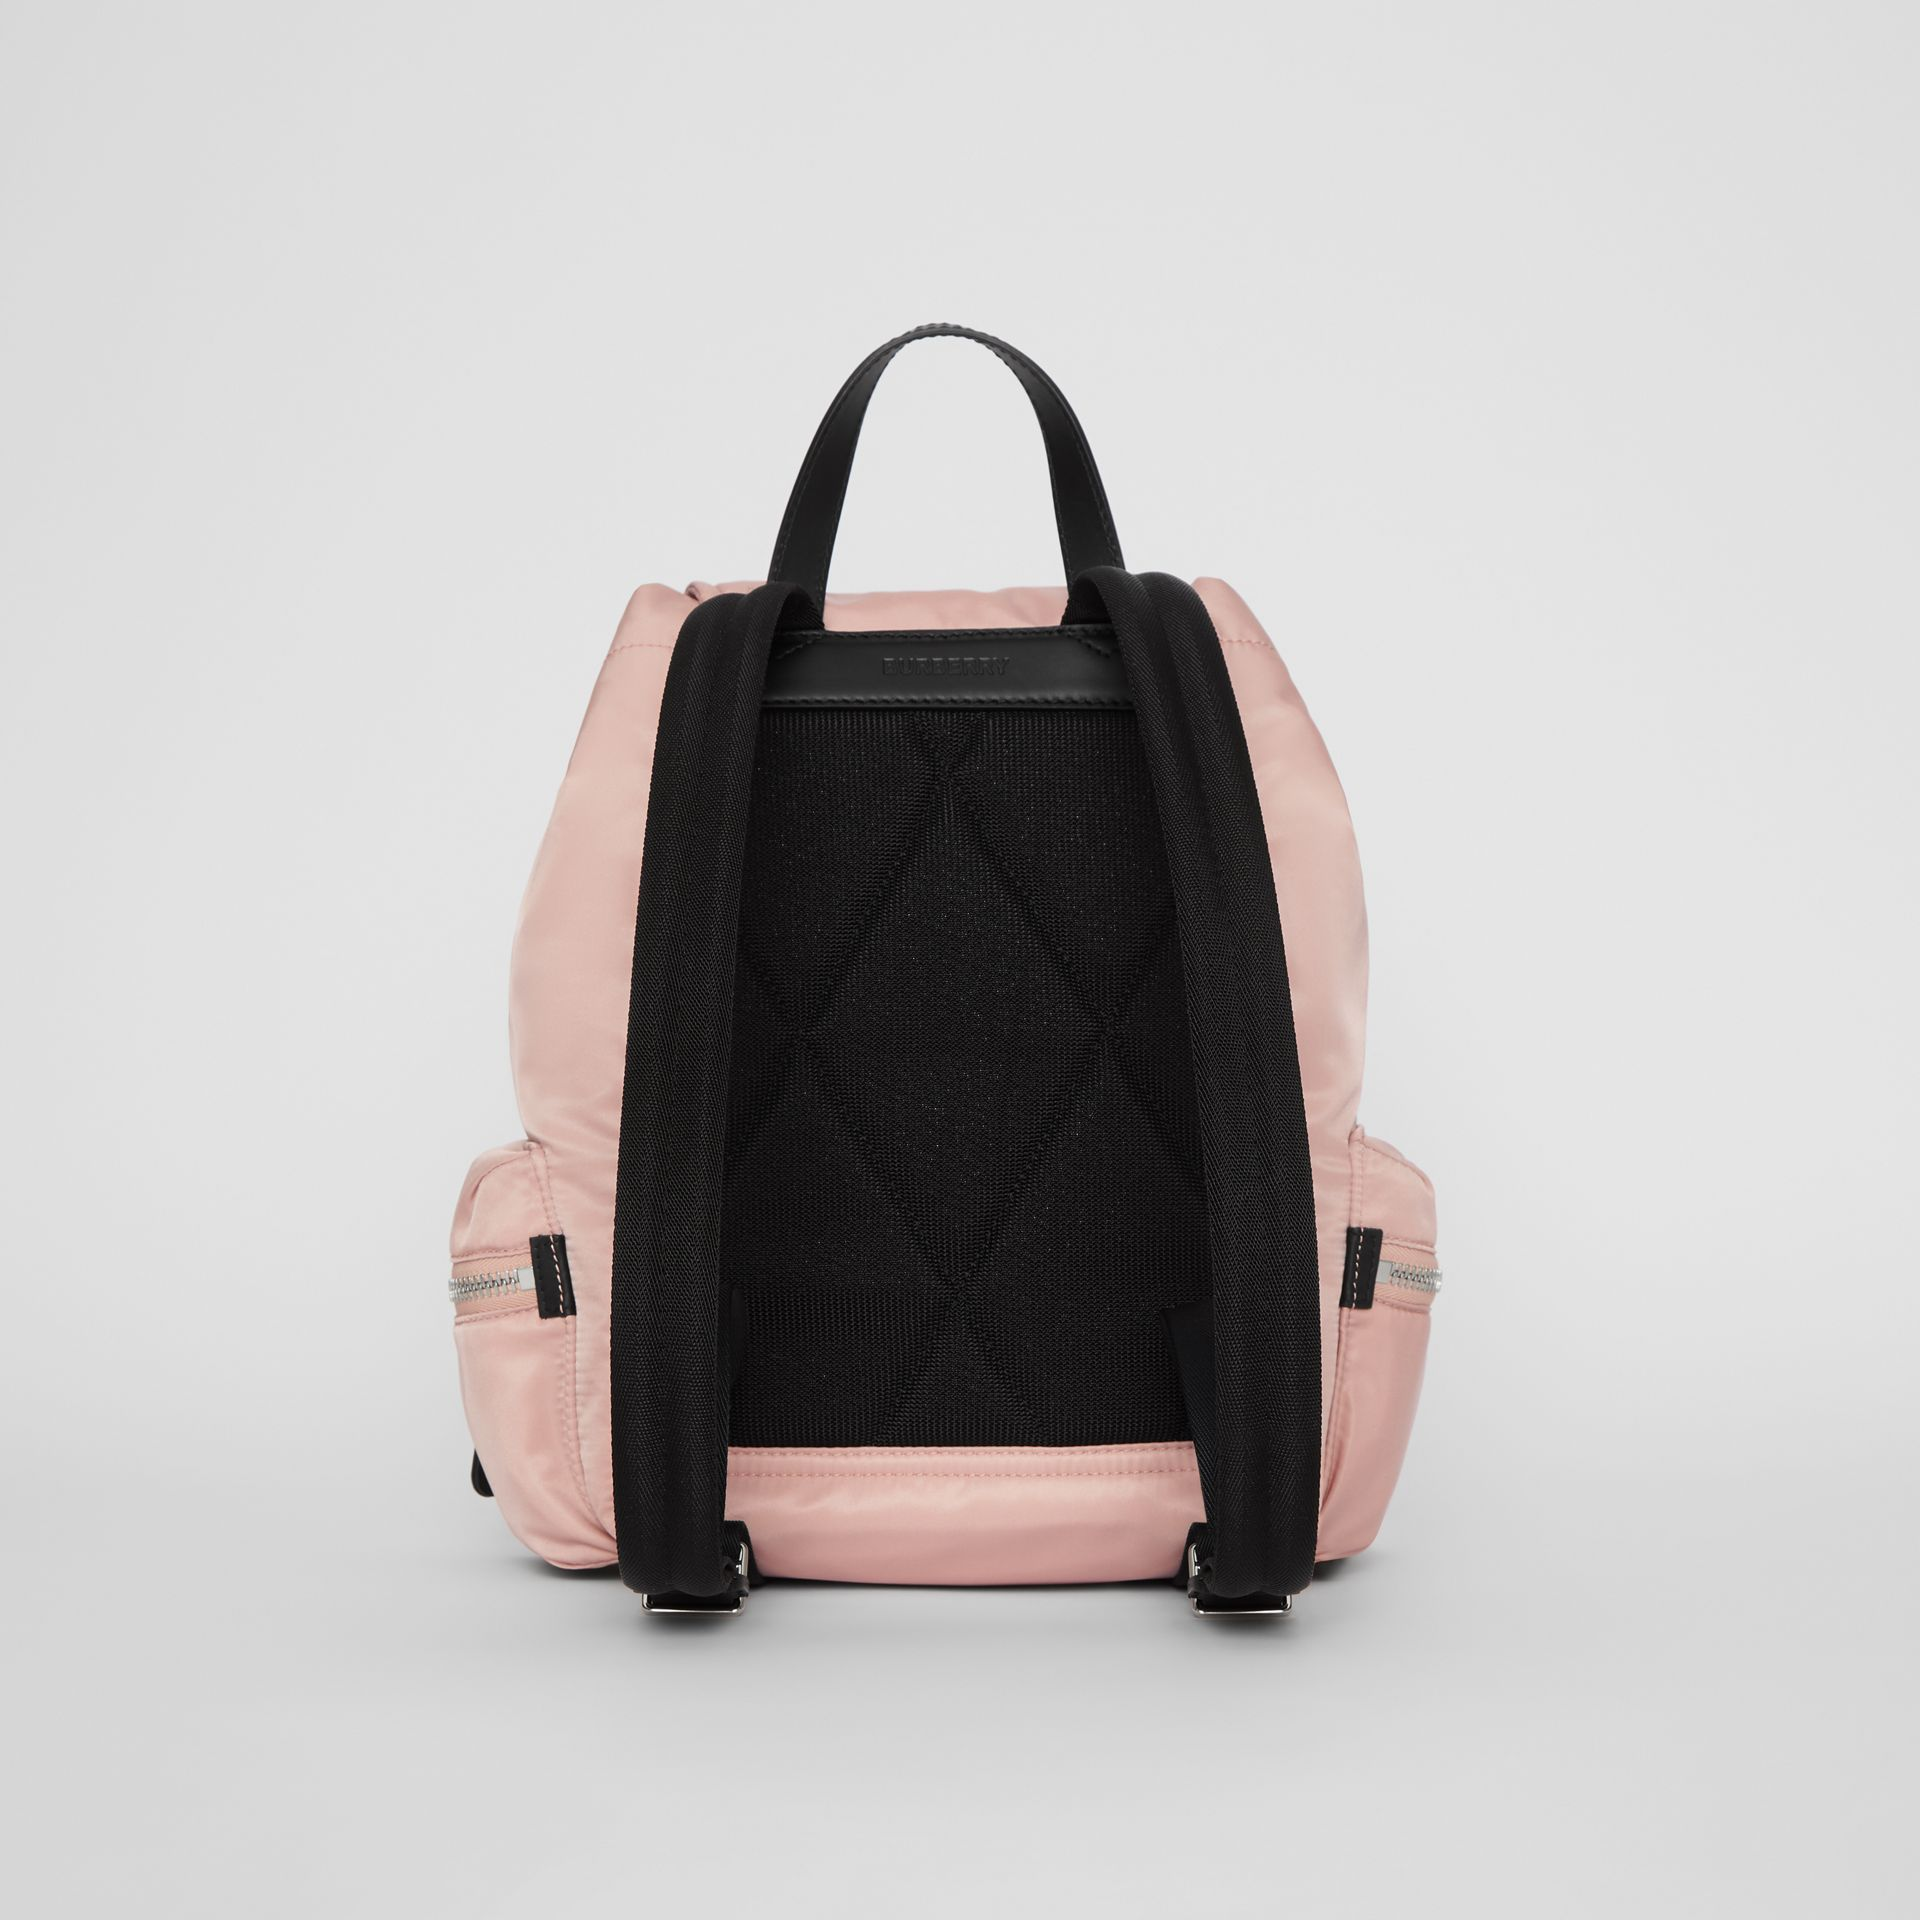 Sac The Rucksack moyen en nylon avec logo (Beige Rose) - Femme | Burberry Canada - photo de la galerie 5